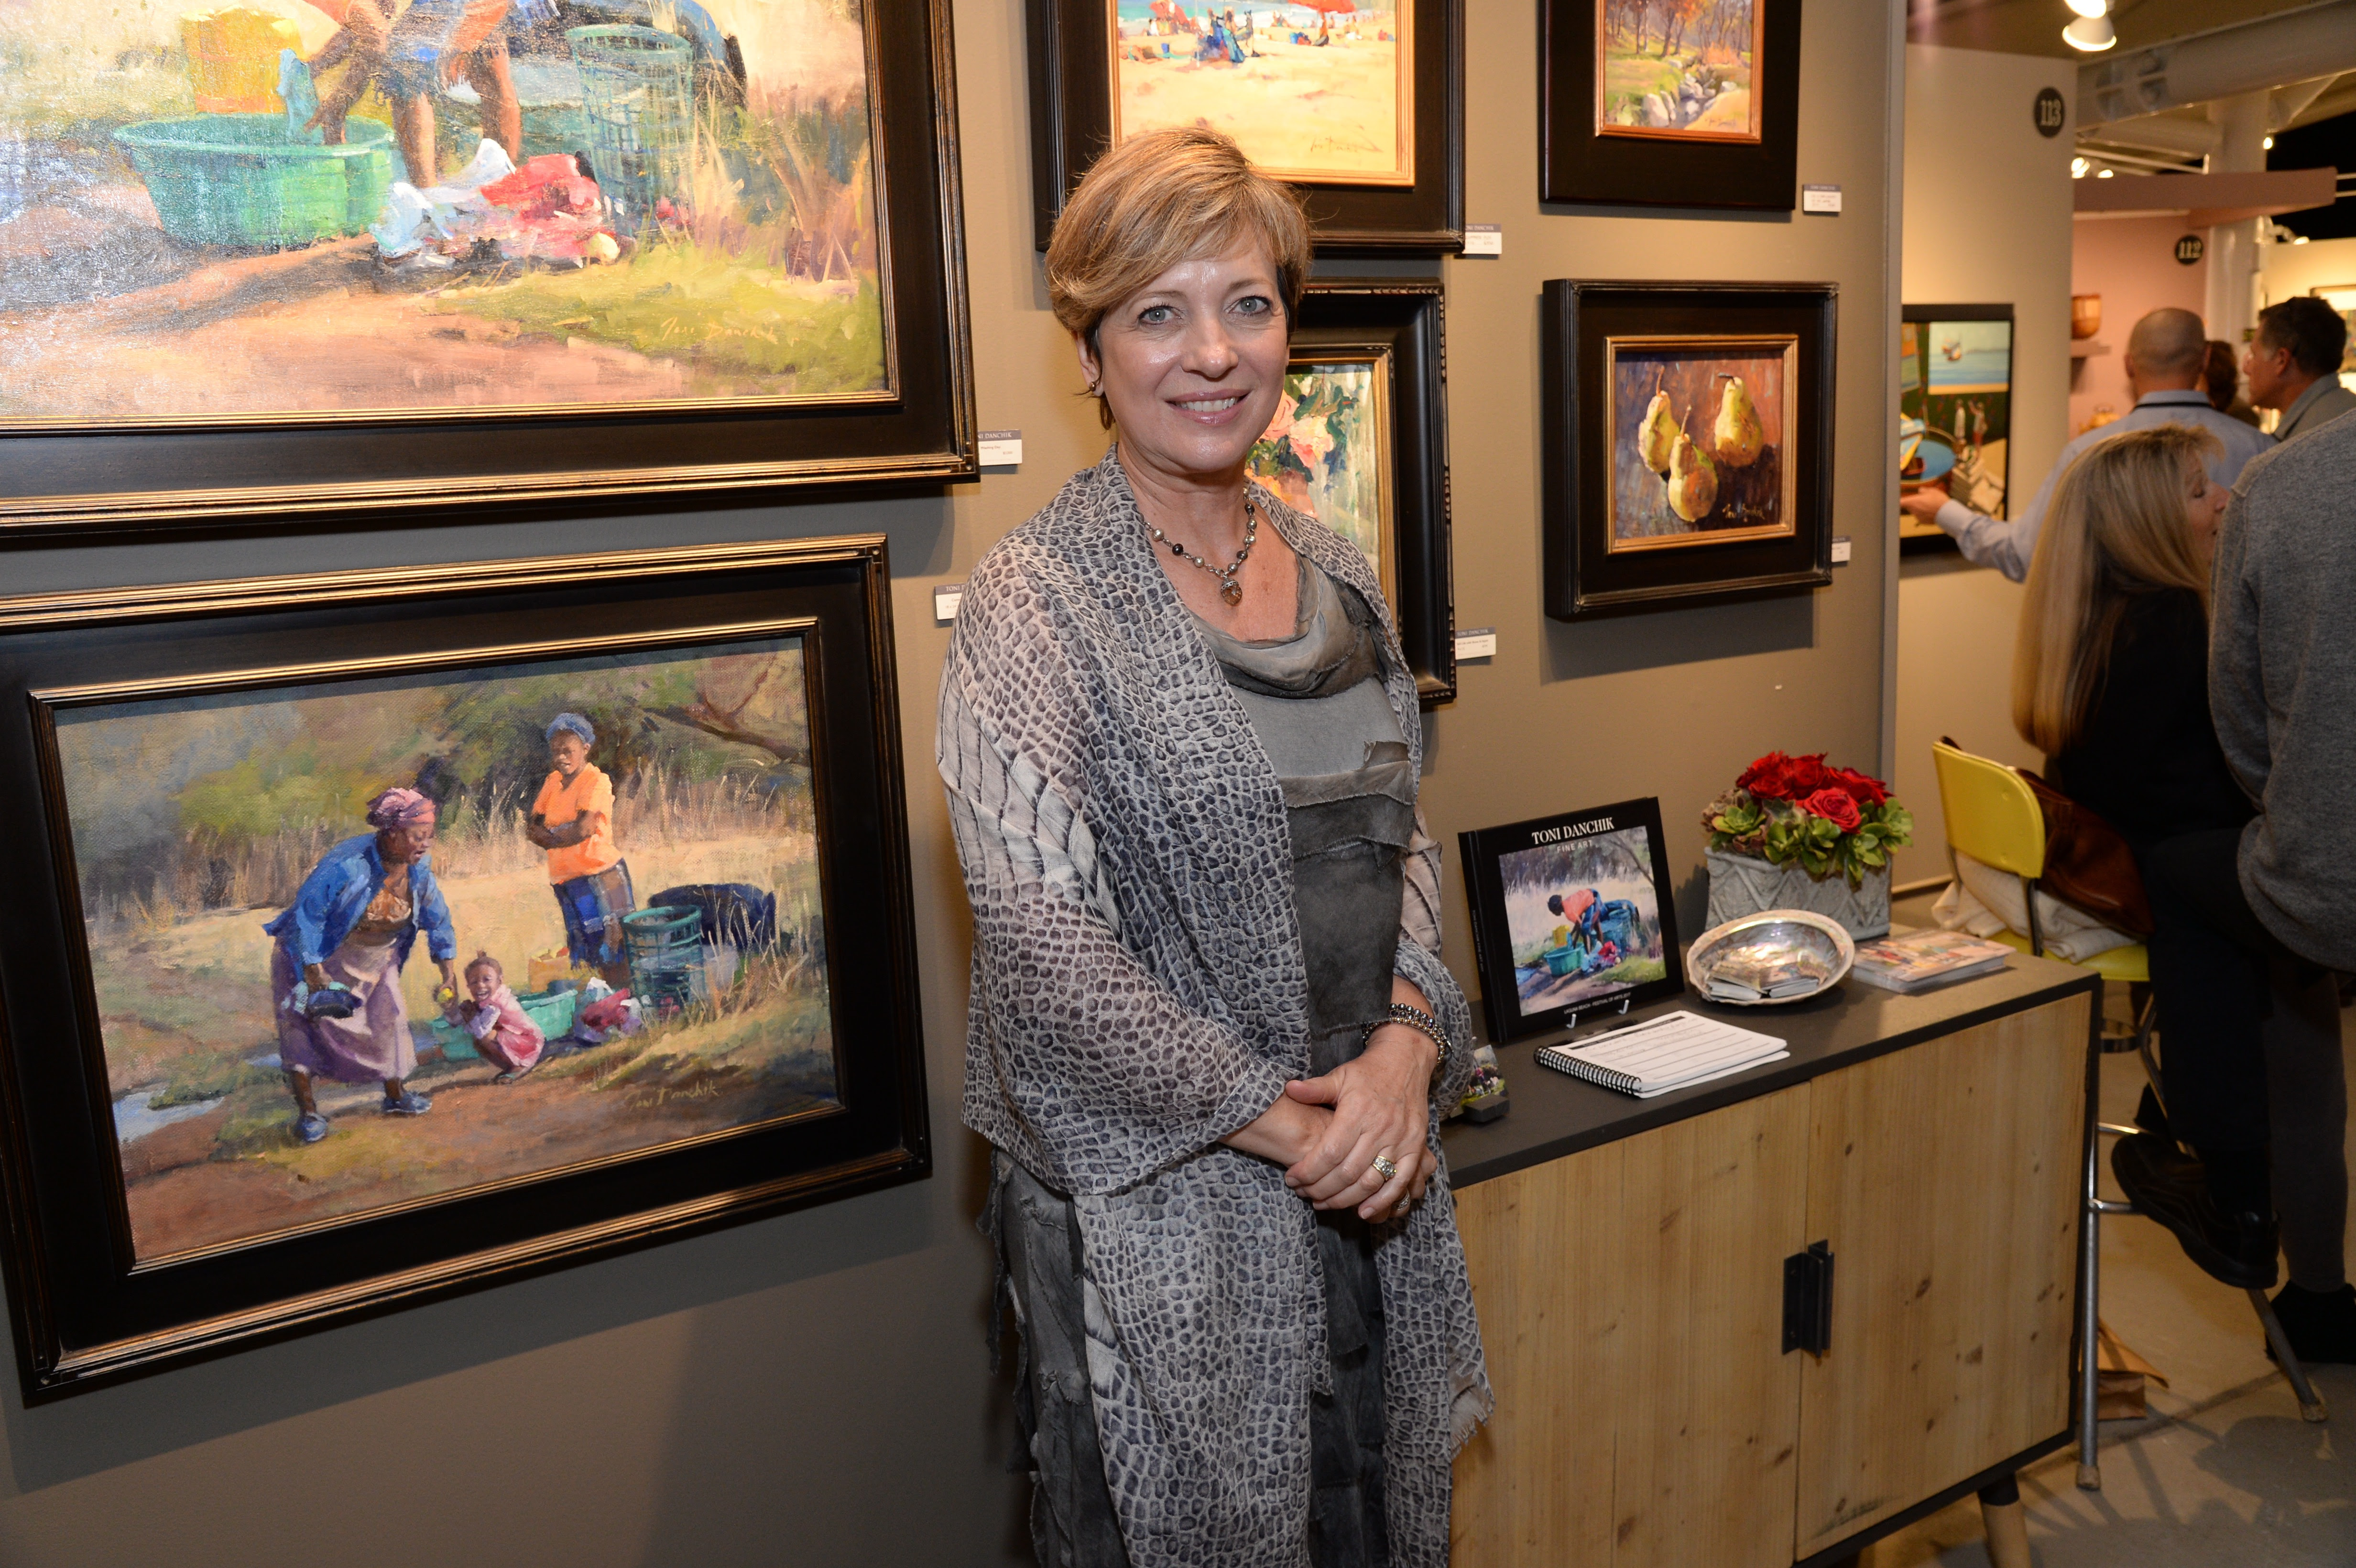 Aliso Laguna News Festival Of Arts Now Accepting Artists Applications For The Summer Of 2018 Fine Art Show Deadline Is October 31 2017 By 4pm Aliso Laguna News